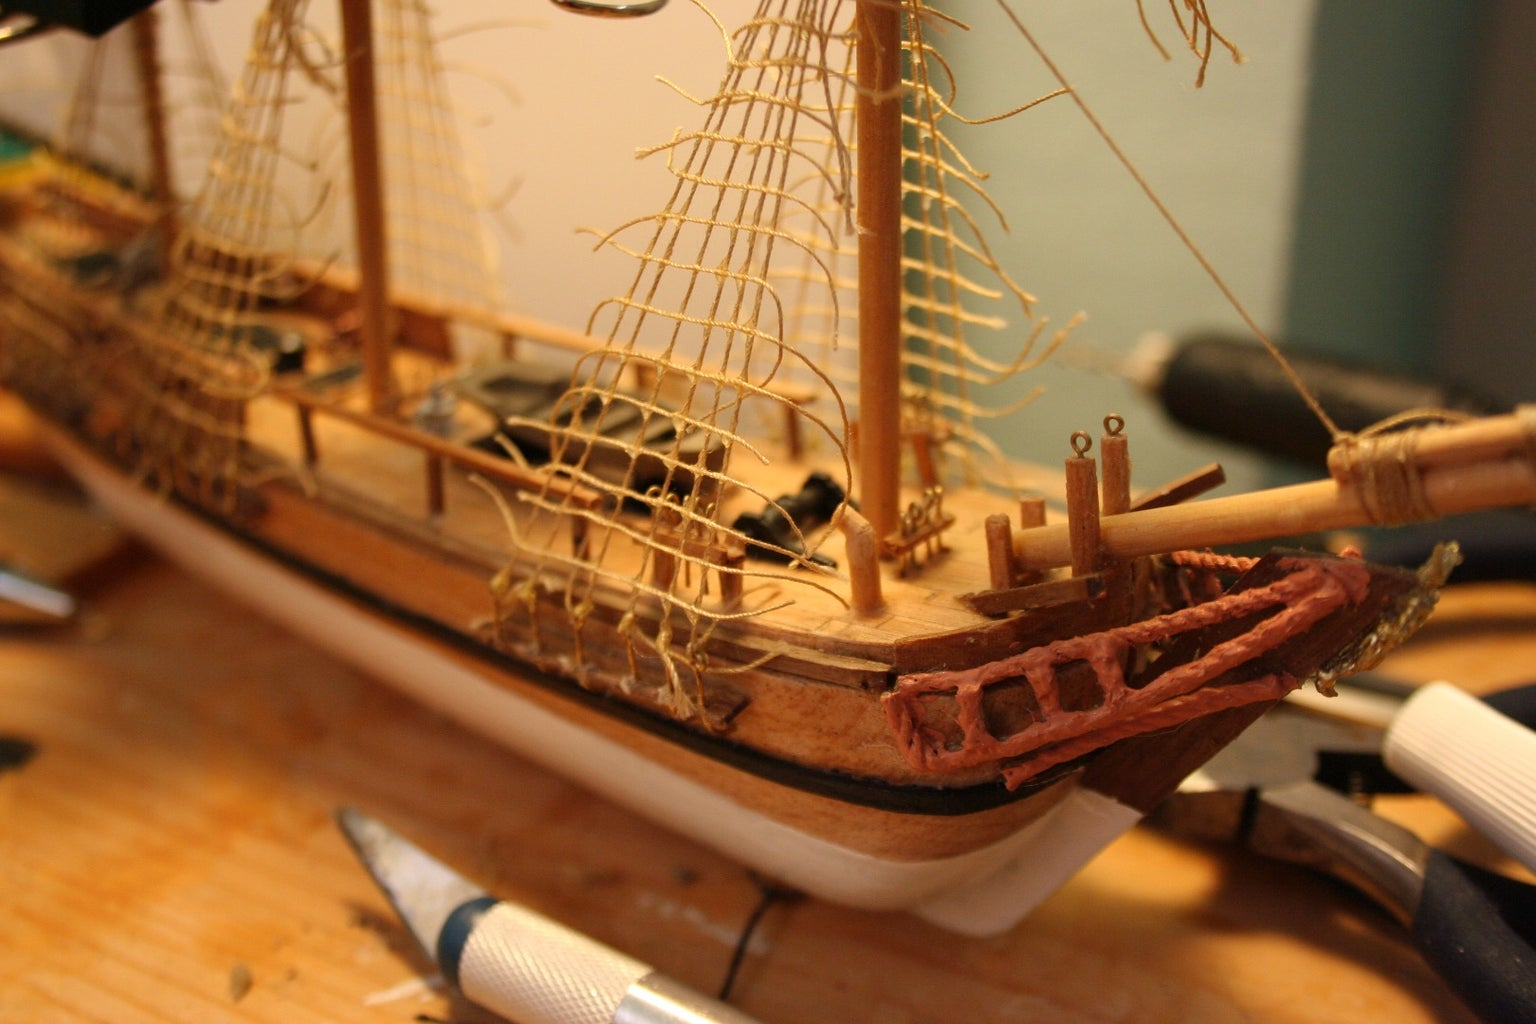 Masts, Sails and Rigging